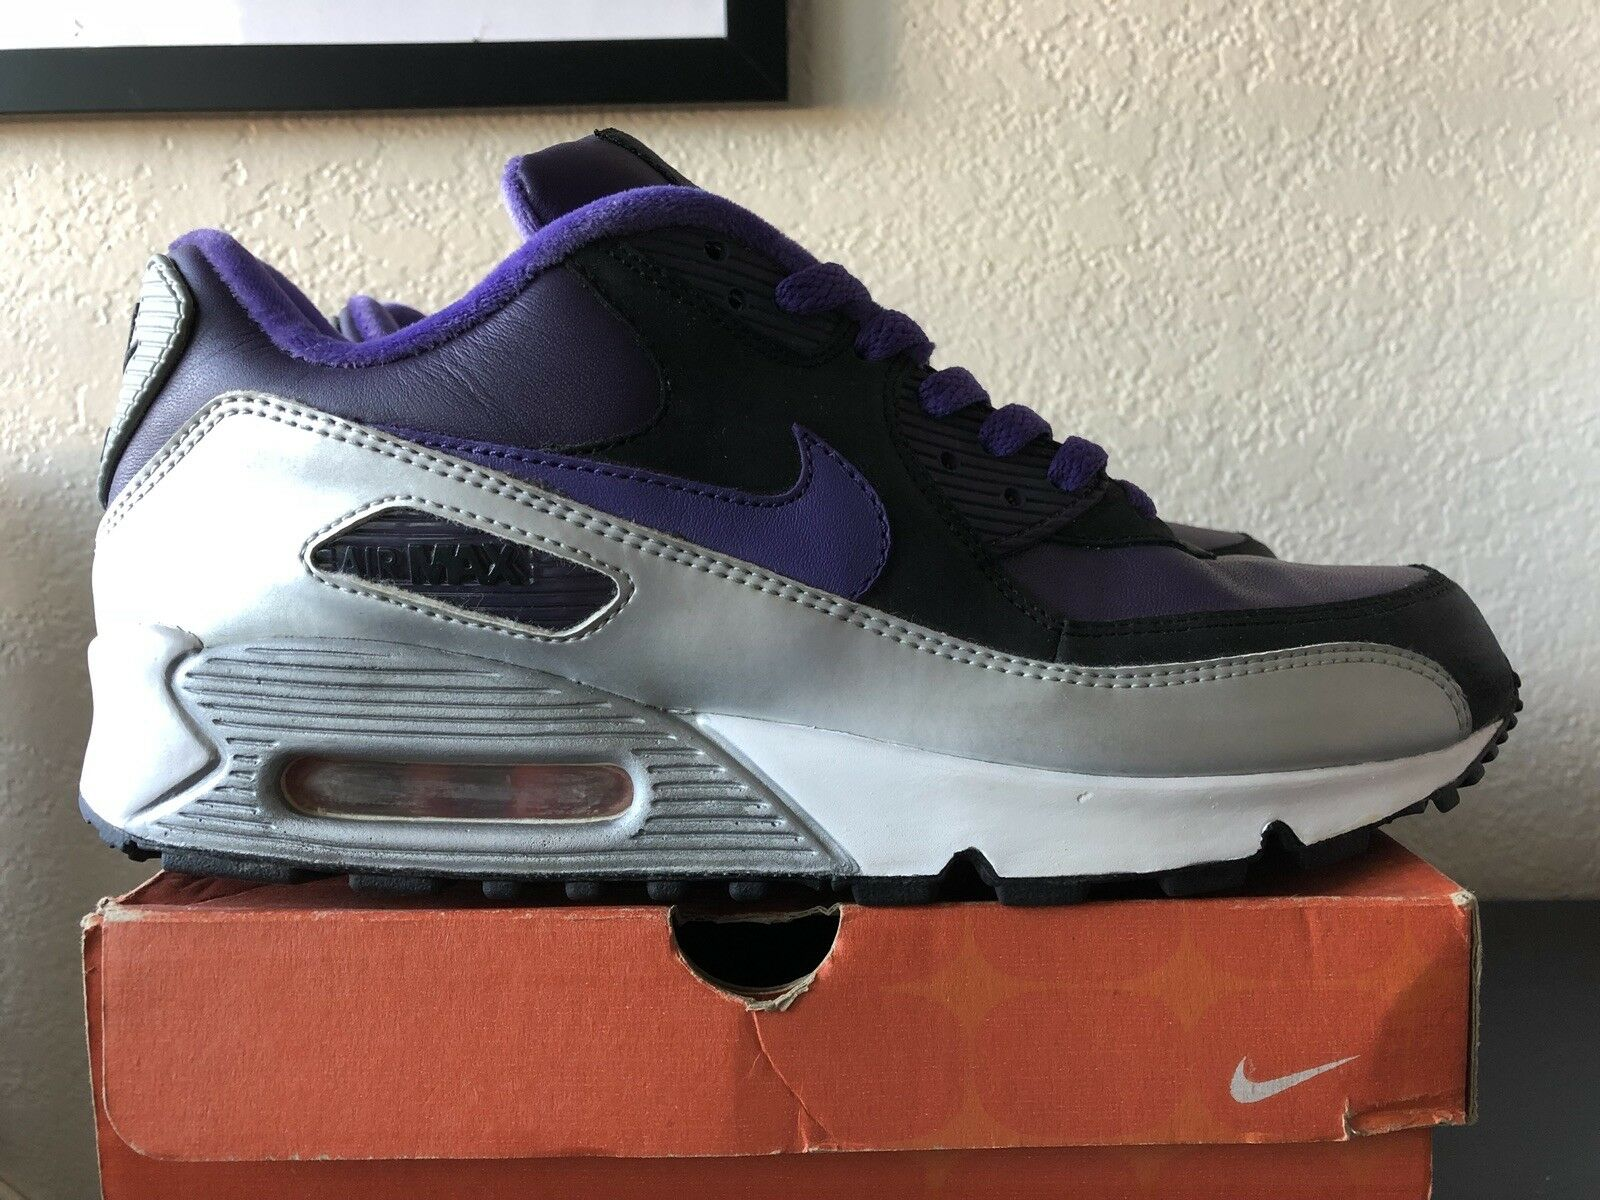 Nike Air Max 90 2006 Purple silver black SAMPLE Size 9 Stars